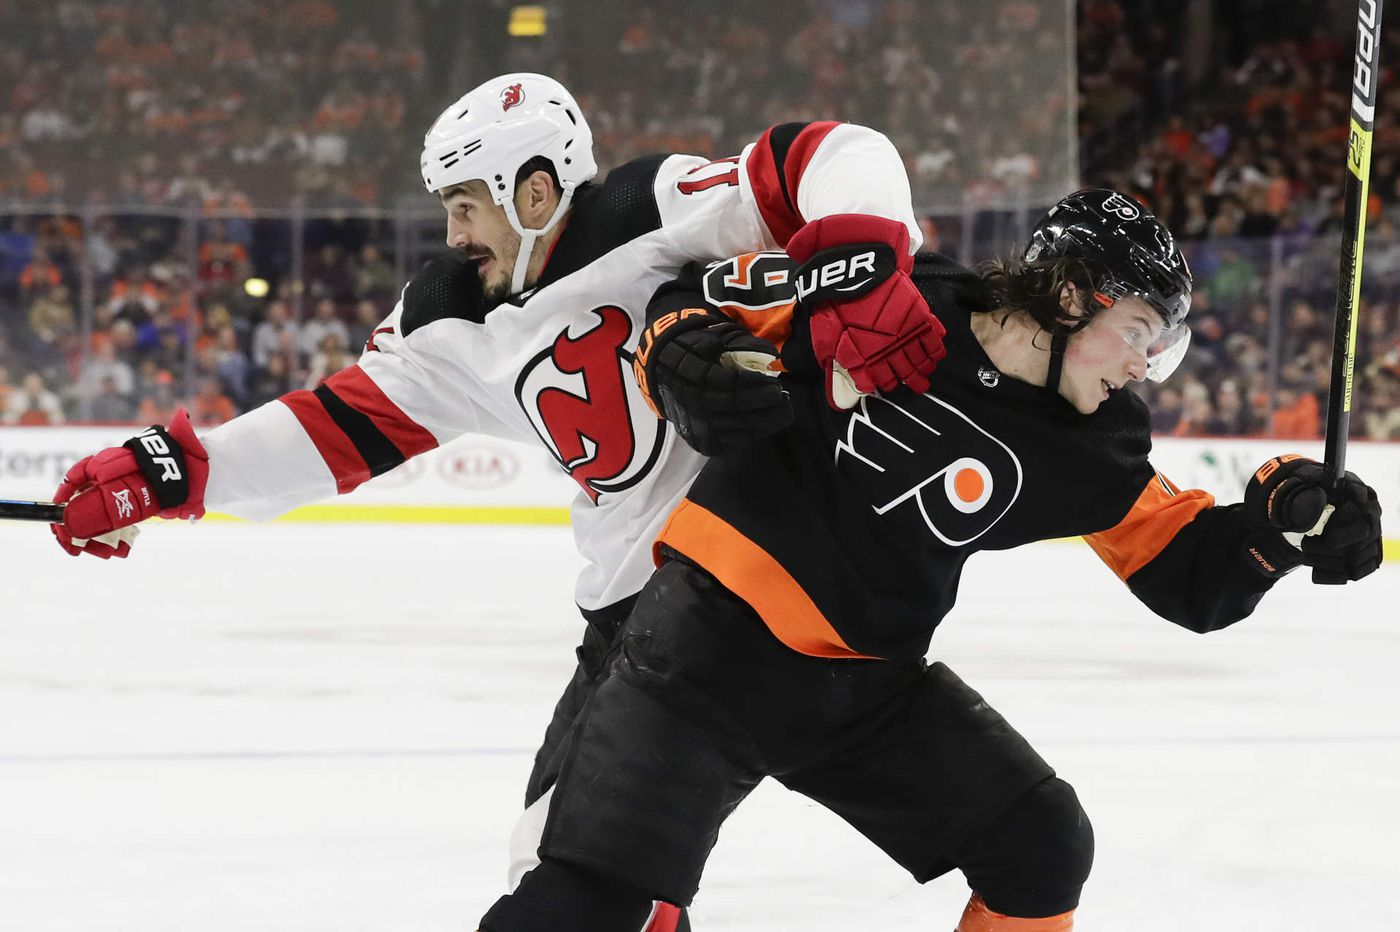 Beginning with Devils, Flyers need to start beating division rivals to have any hopes of making playoffs